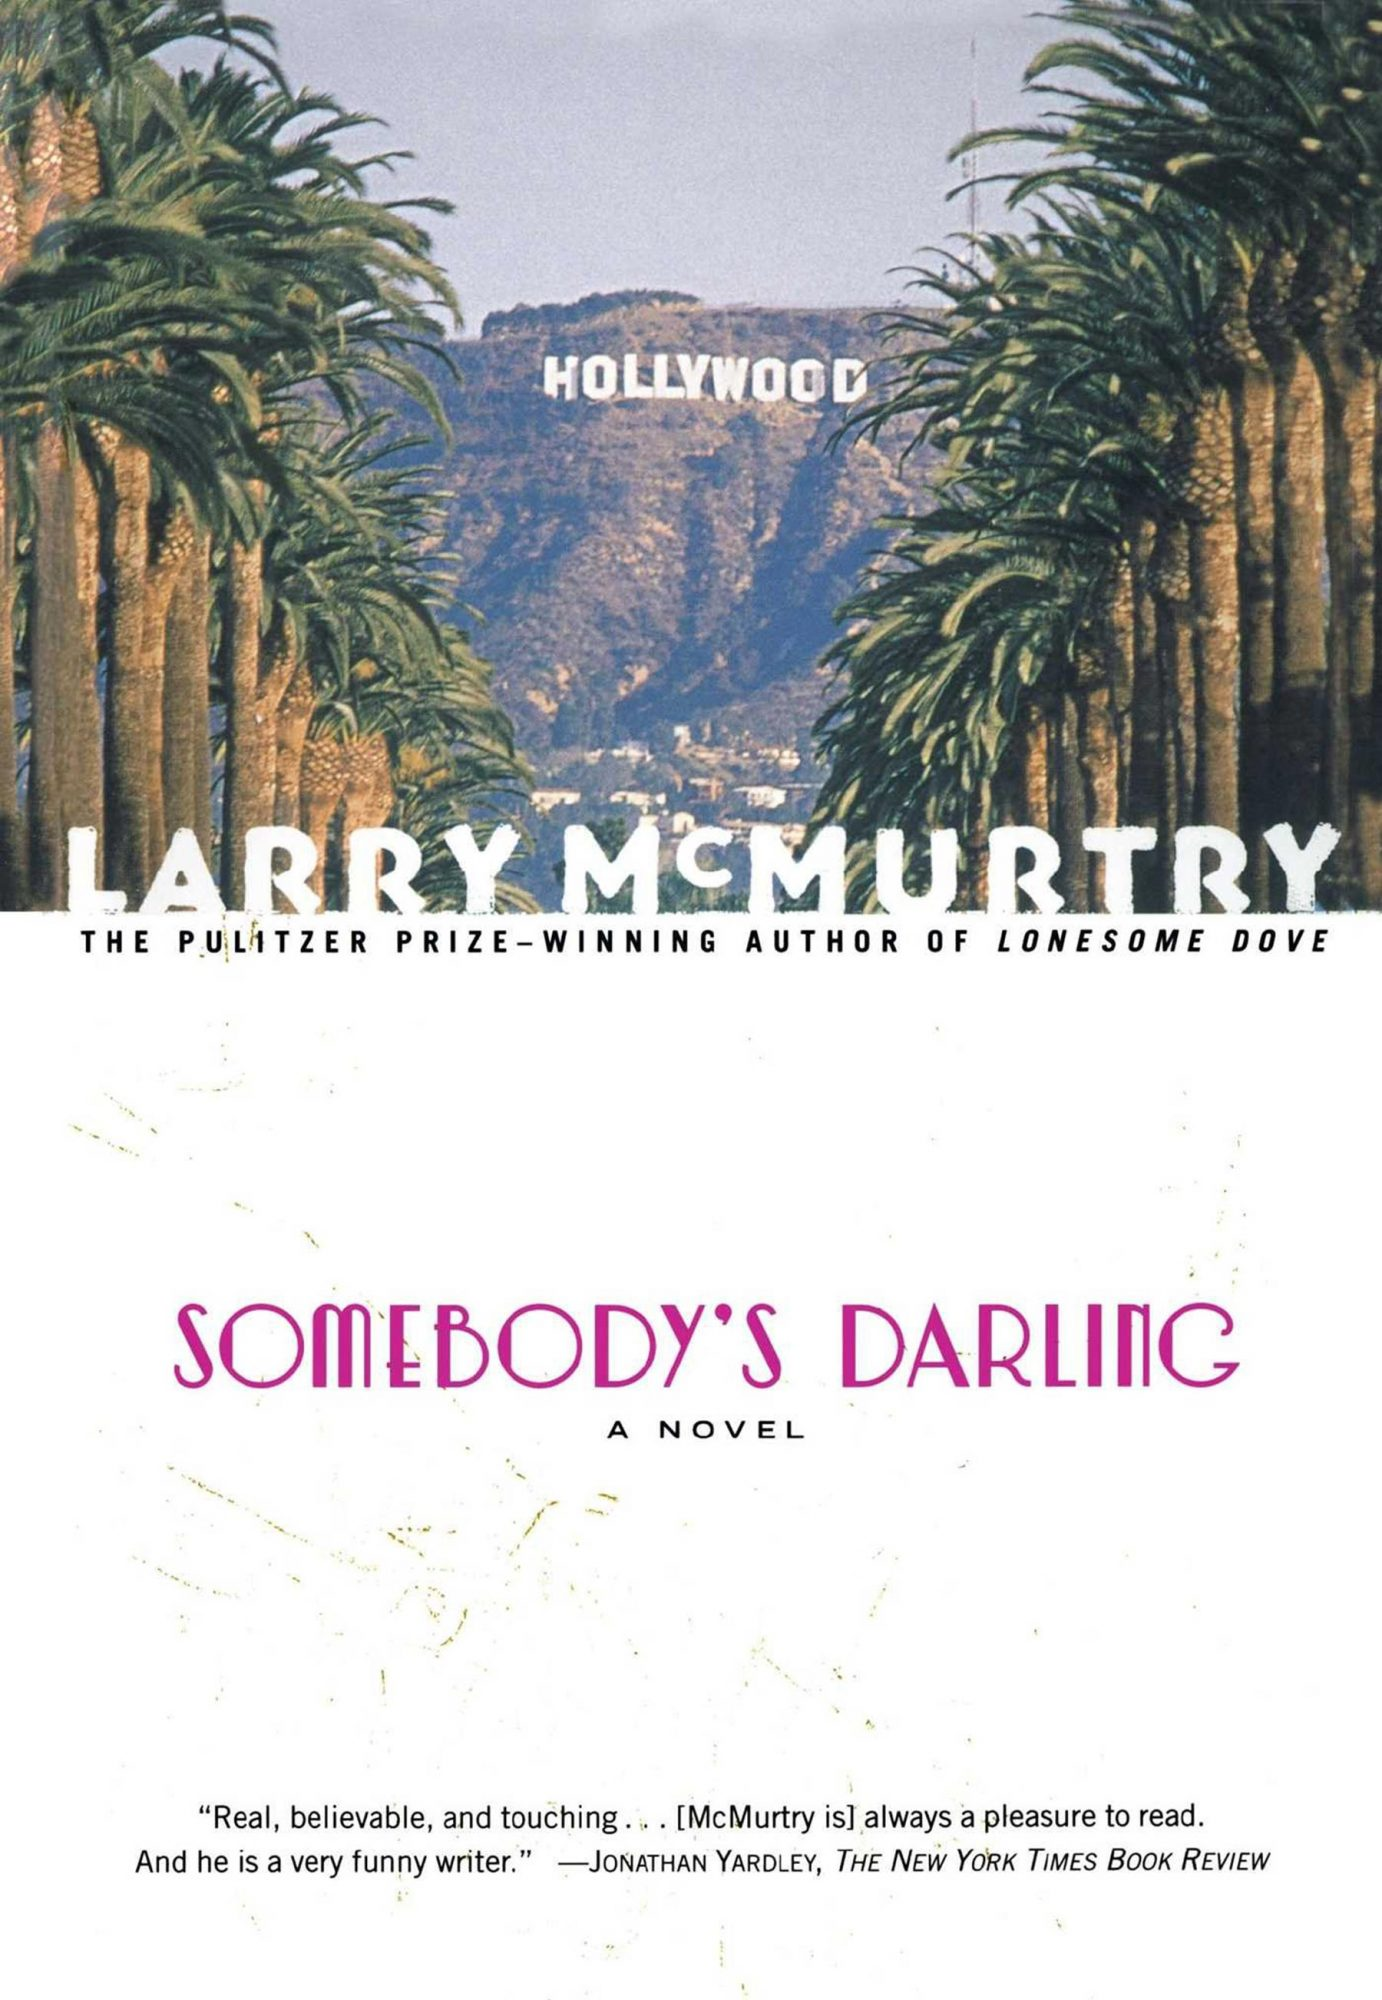 Somebody's Darling, by Larry McMurtry